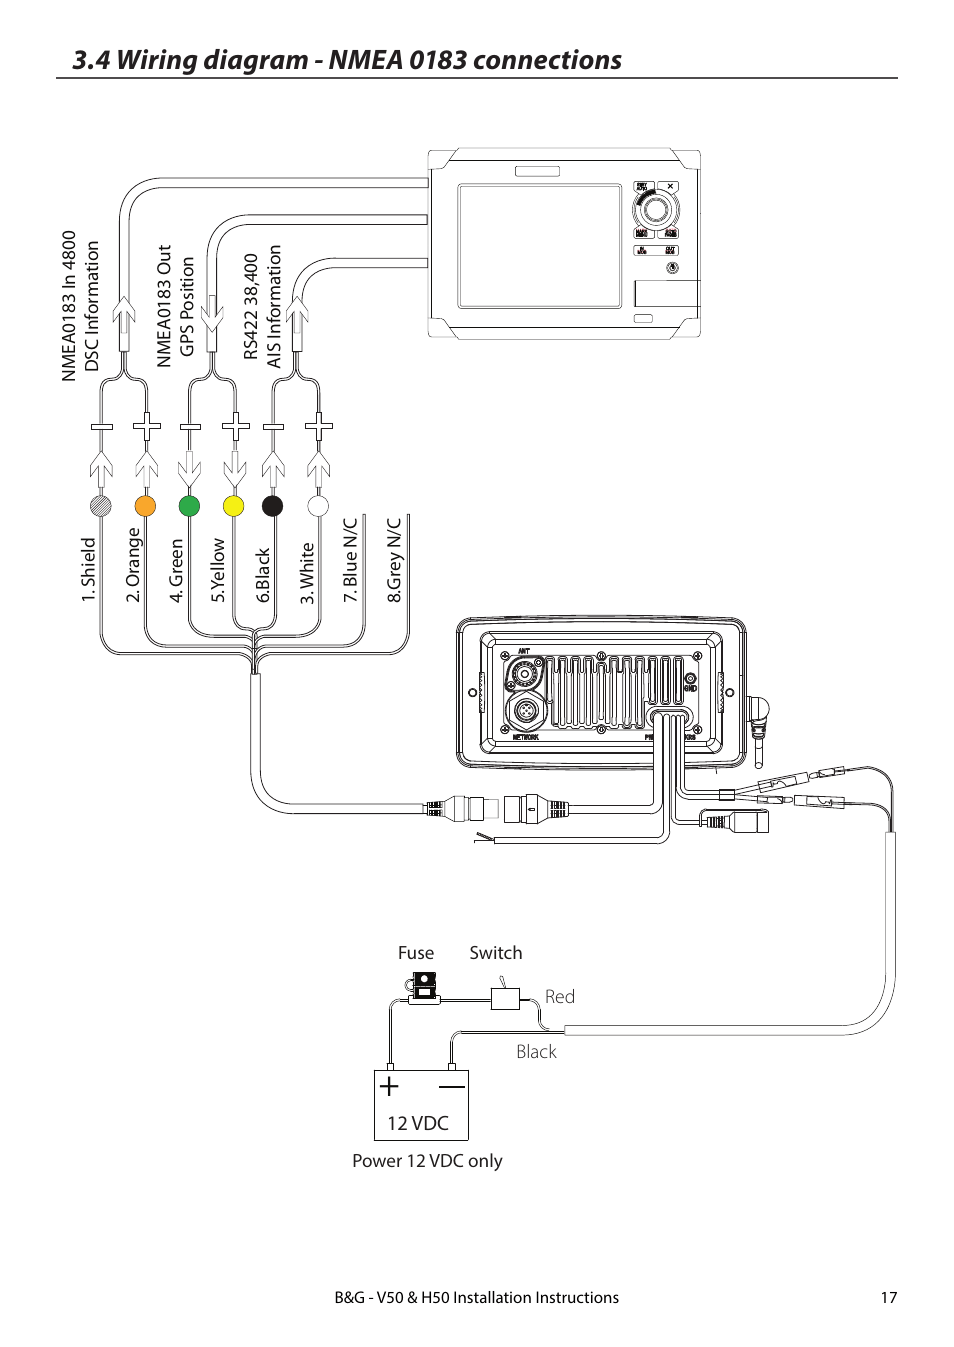 medium resolution of 4 wiring diagram nmea 0183 connections b g h50 wireless vhf handset user manual page 17 22